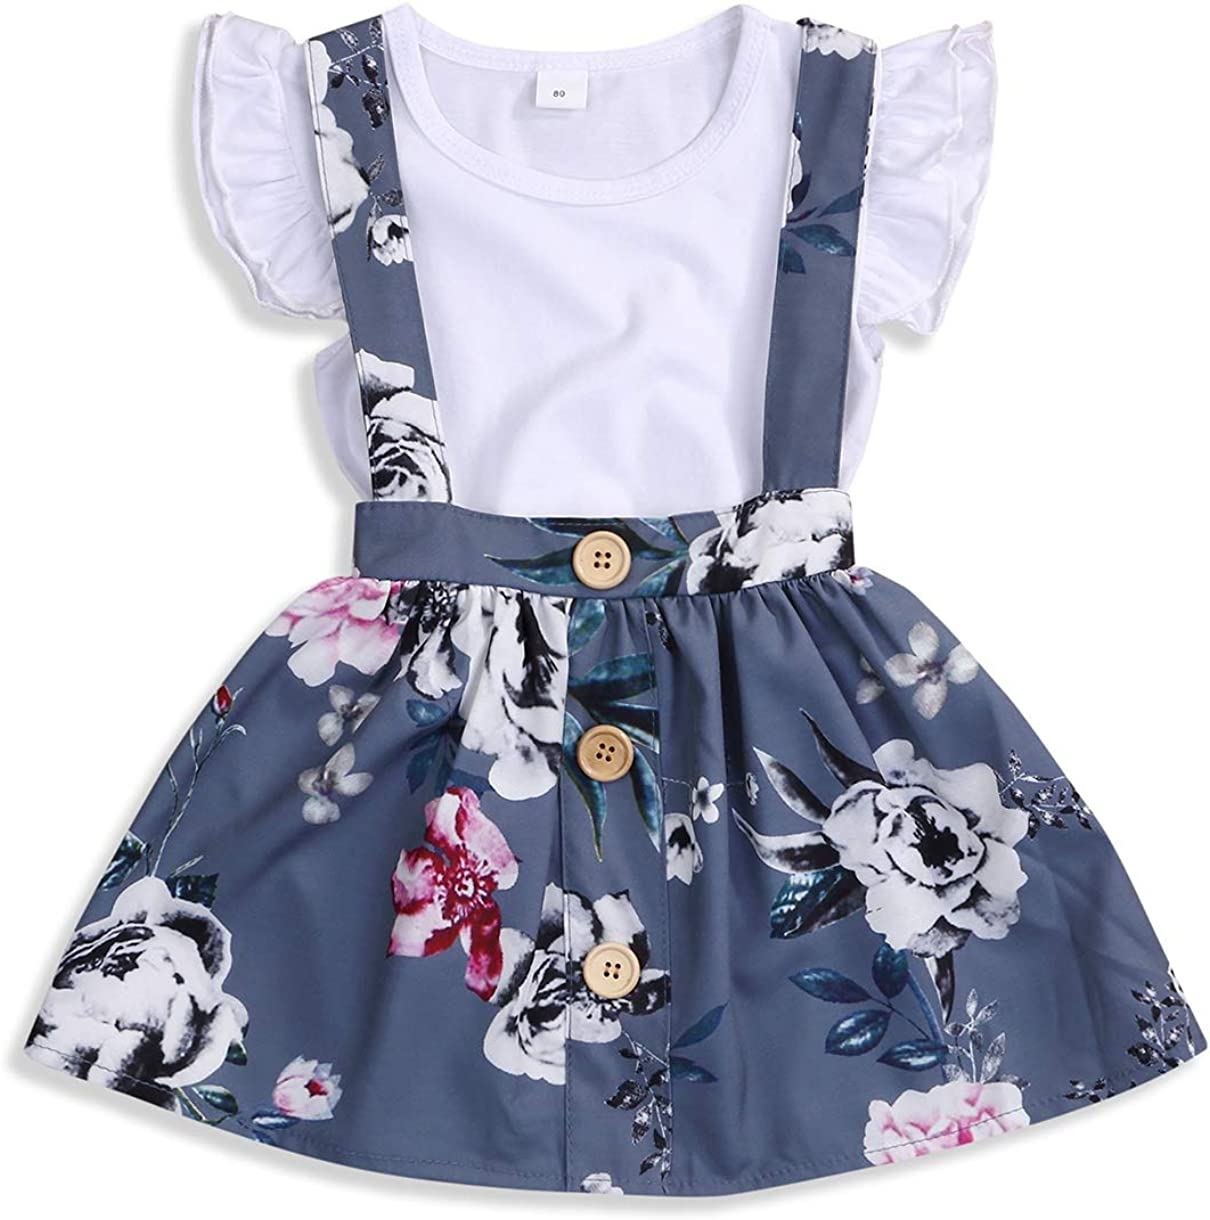 Baby Girls Skirts Set Ruffle Romper +Floral Overall Dress Button Strap Tutu Skirts Birthday Suspender Outfits: Clothing, Shoes & Jewelry